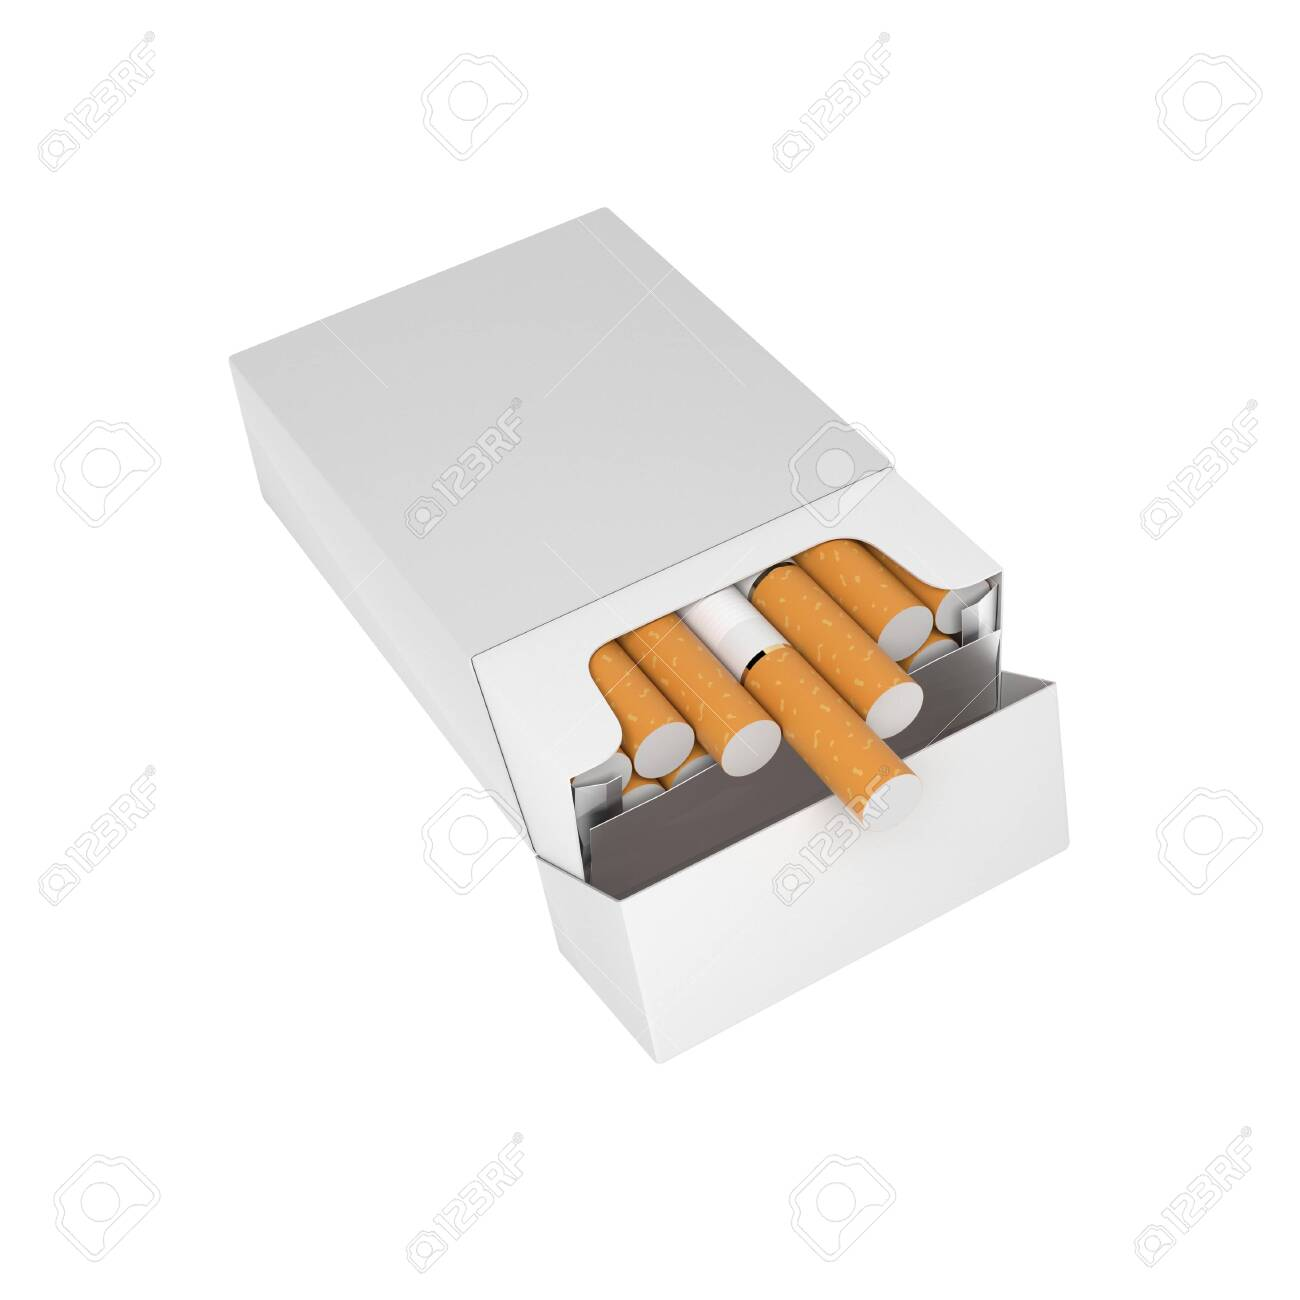 White blank pack of cigarettes. With brown filter. 3d rendering illustration isolated on white background - 150524886